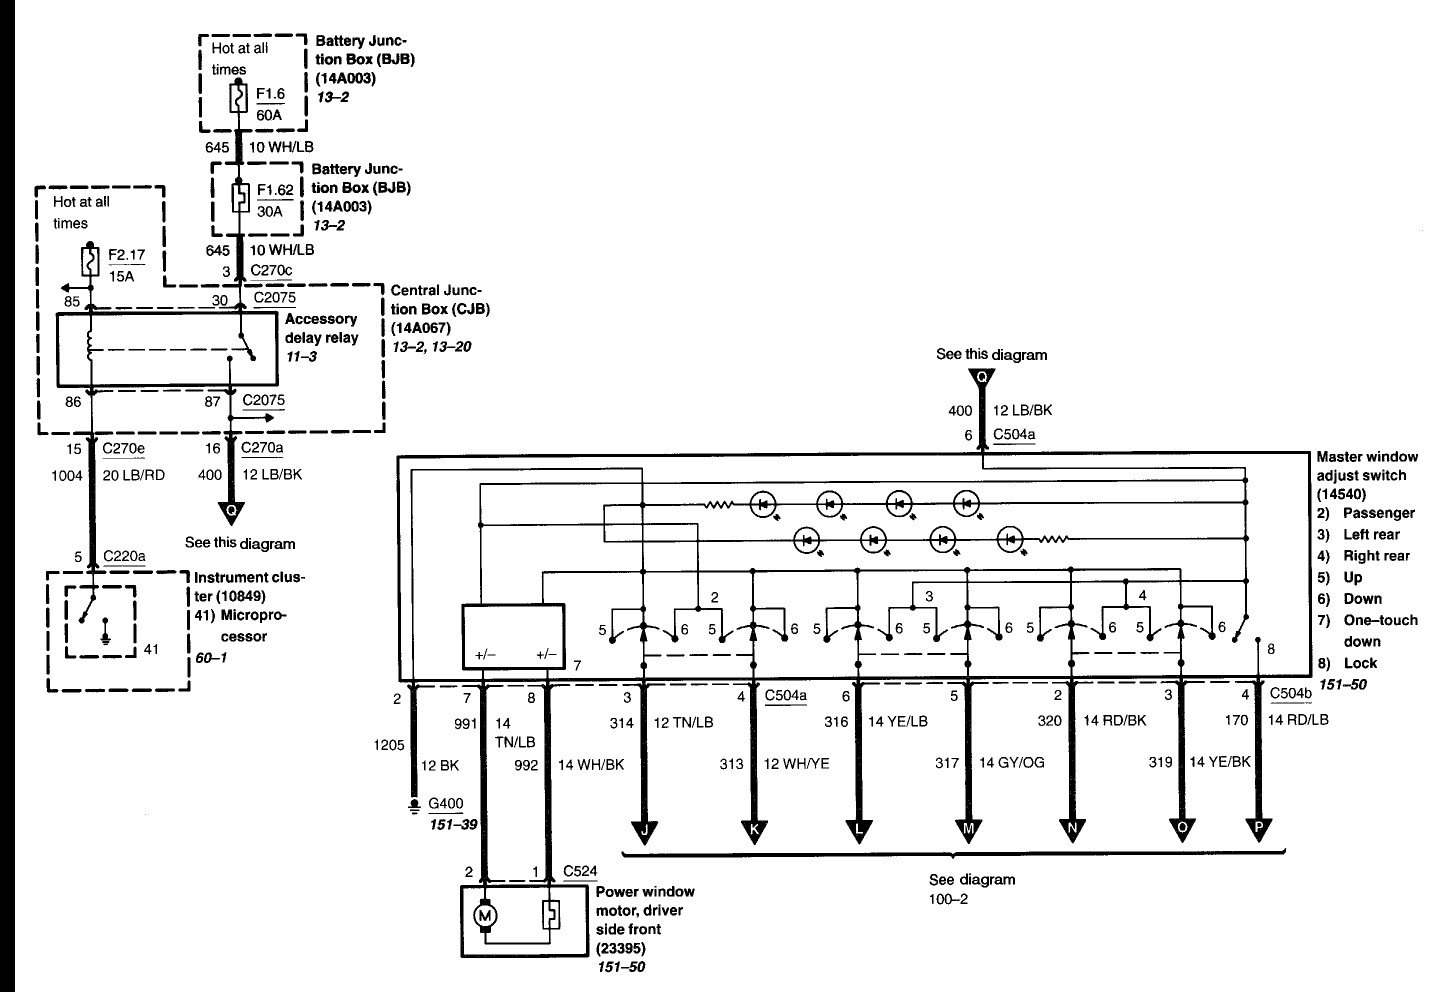 [DIAGRAM] 2002 Ford Explorer Radio Wiring Diagram Wiring